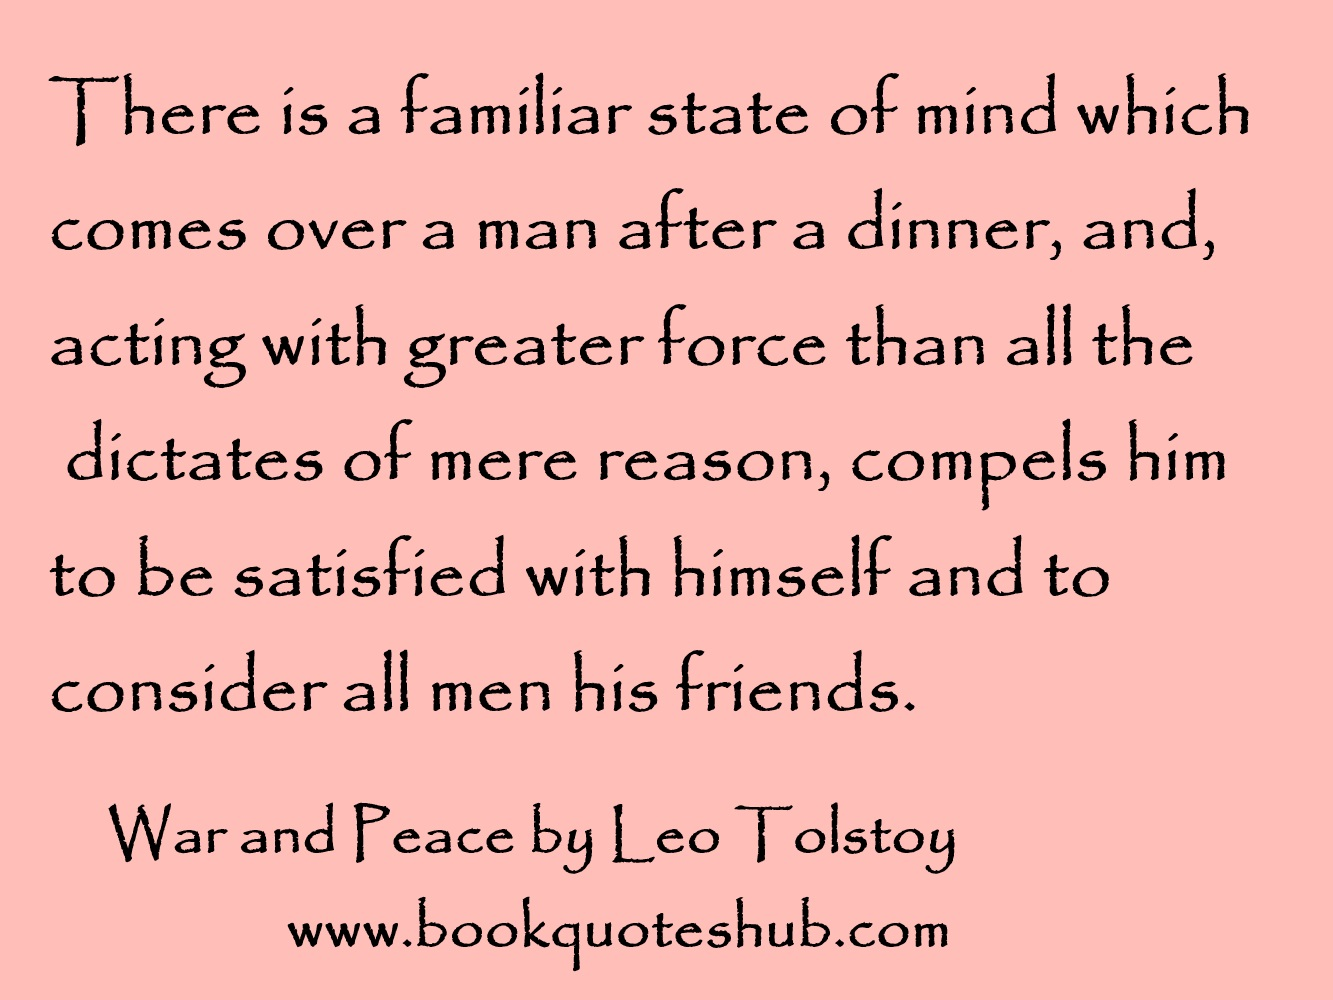 Tolstoy Quotes War And Peace War And Peace by Leo Tolstoy